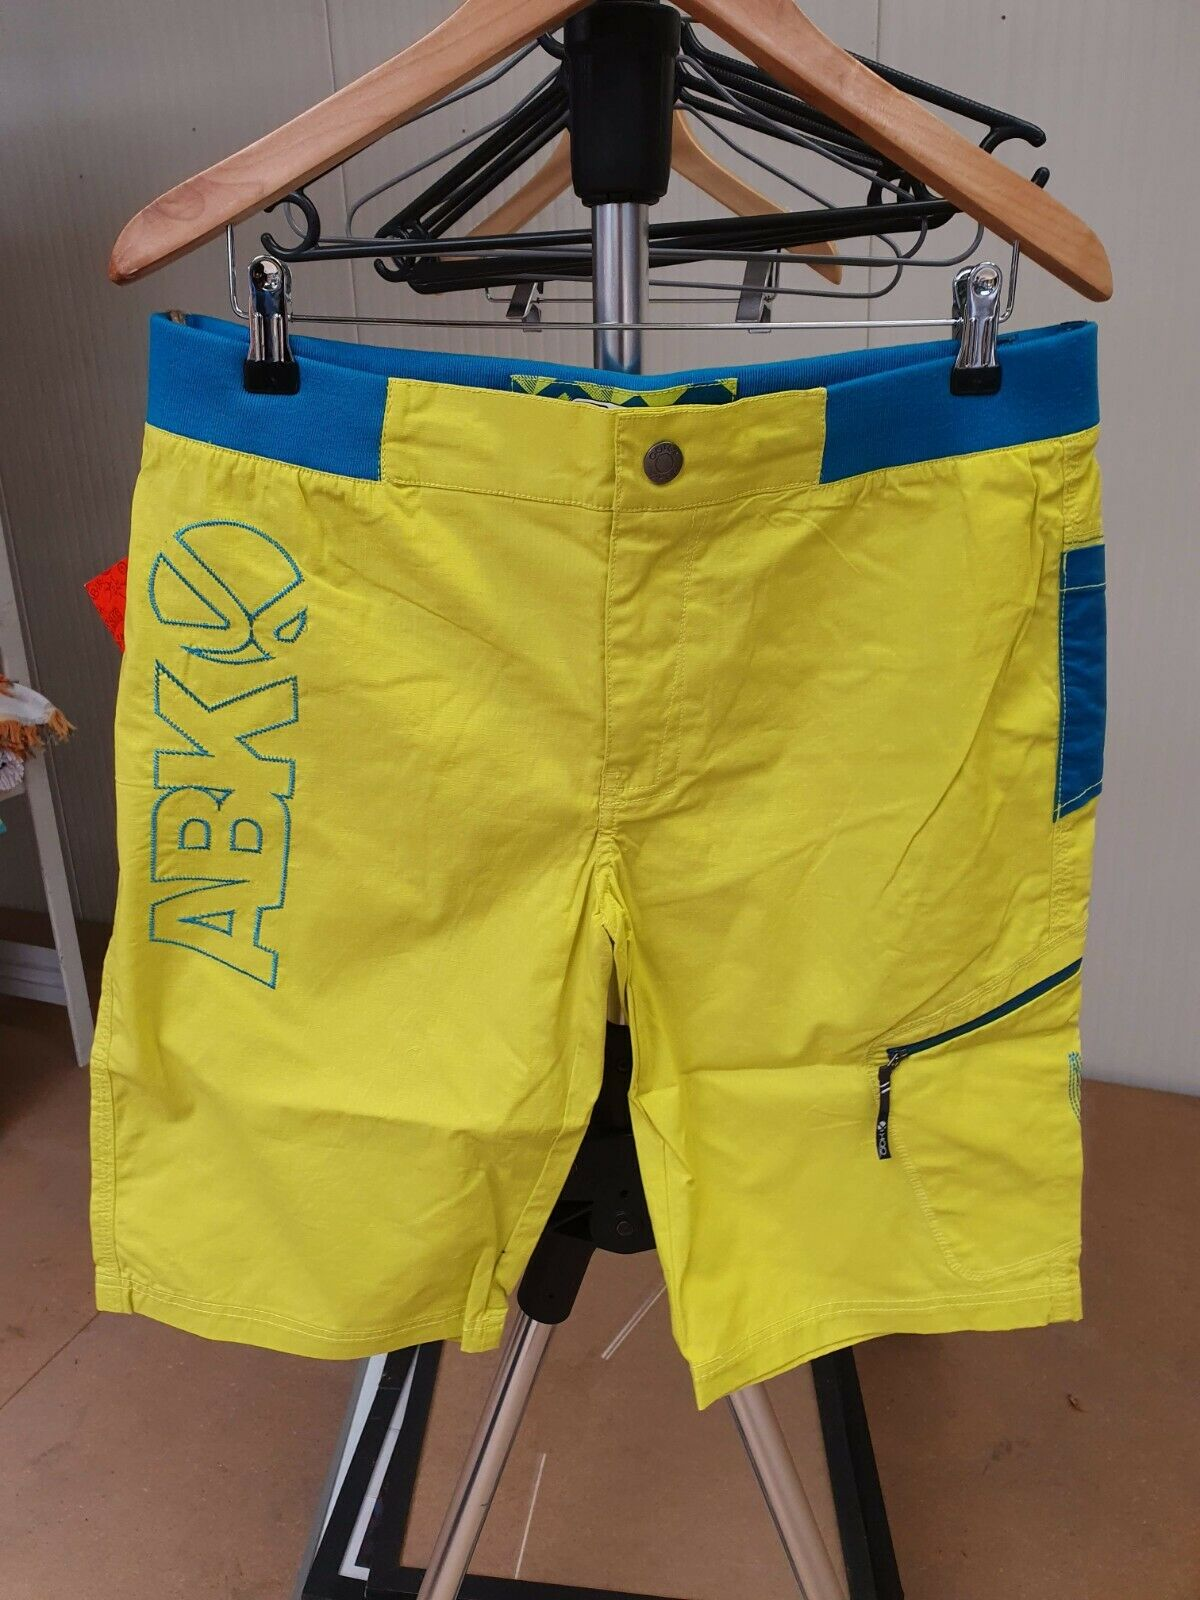 ELO1 #6 Bermuda/Shorts Sports Man Abk Yellow (With One Defect)